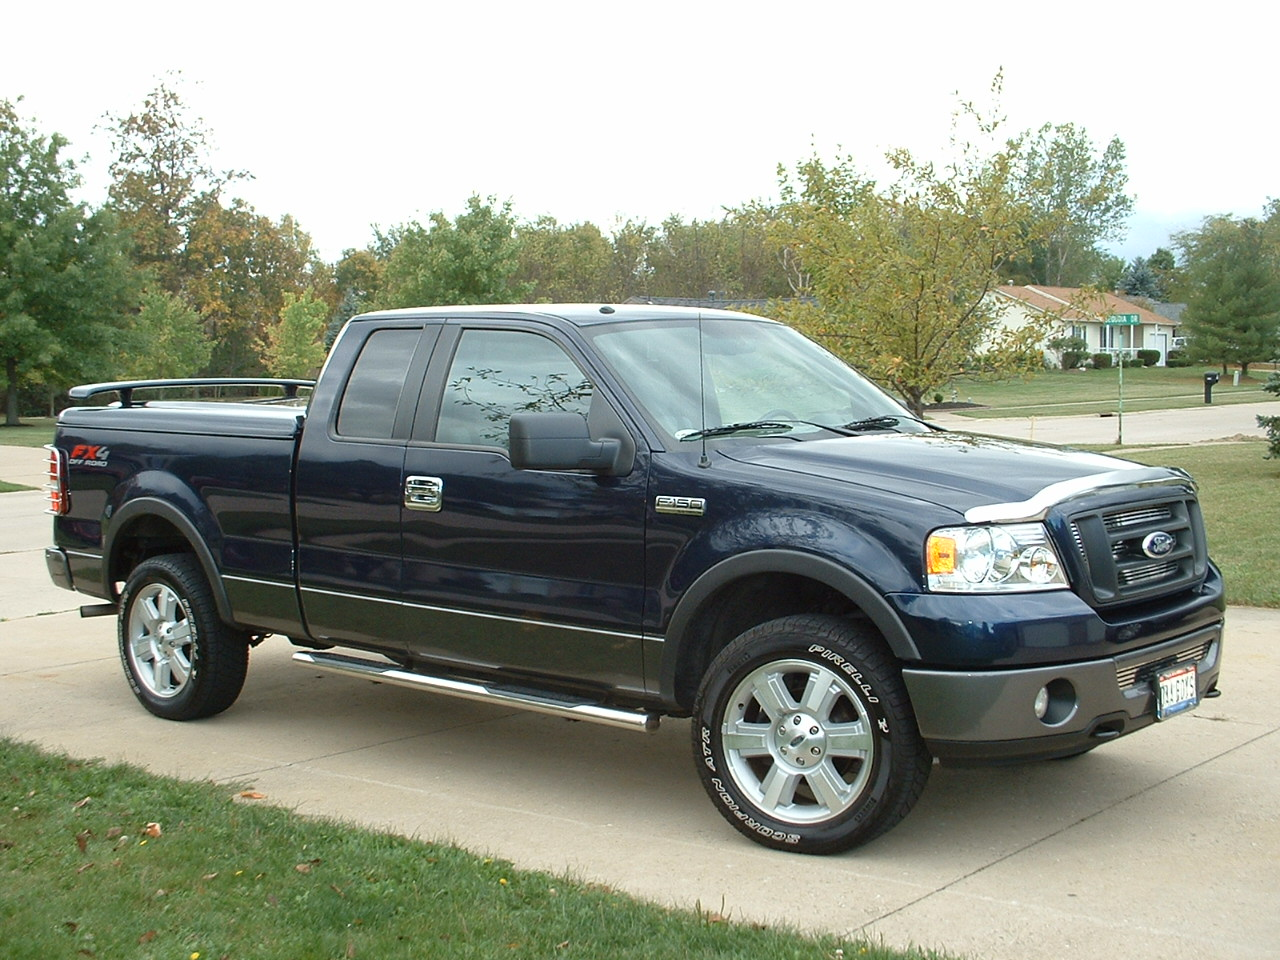 2006 Ford F-150 FX4 4dr SuperCrew 4WD Styleside 6.5 ft. LB picture,